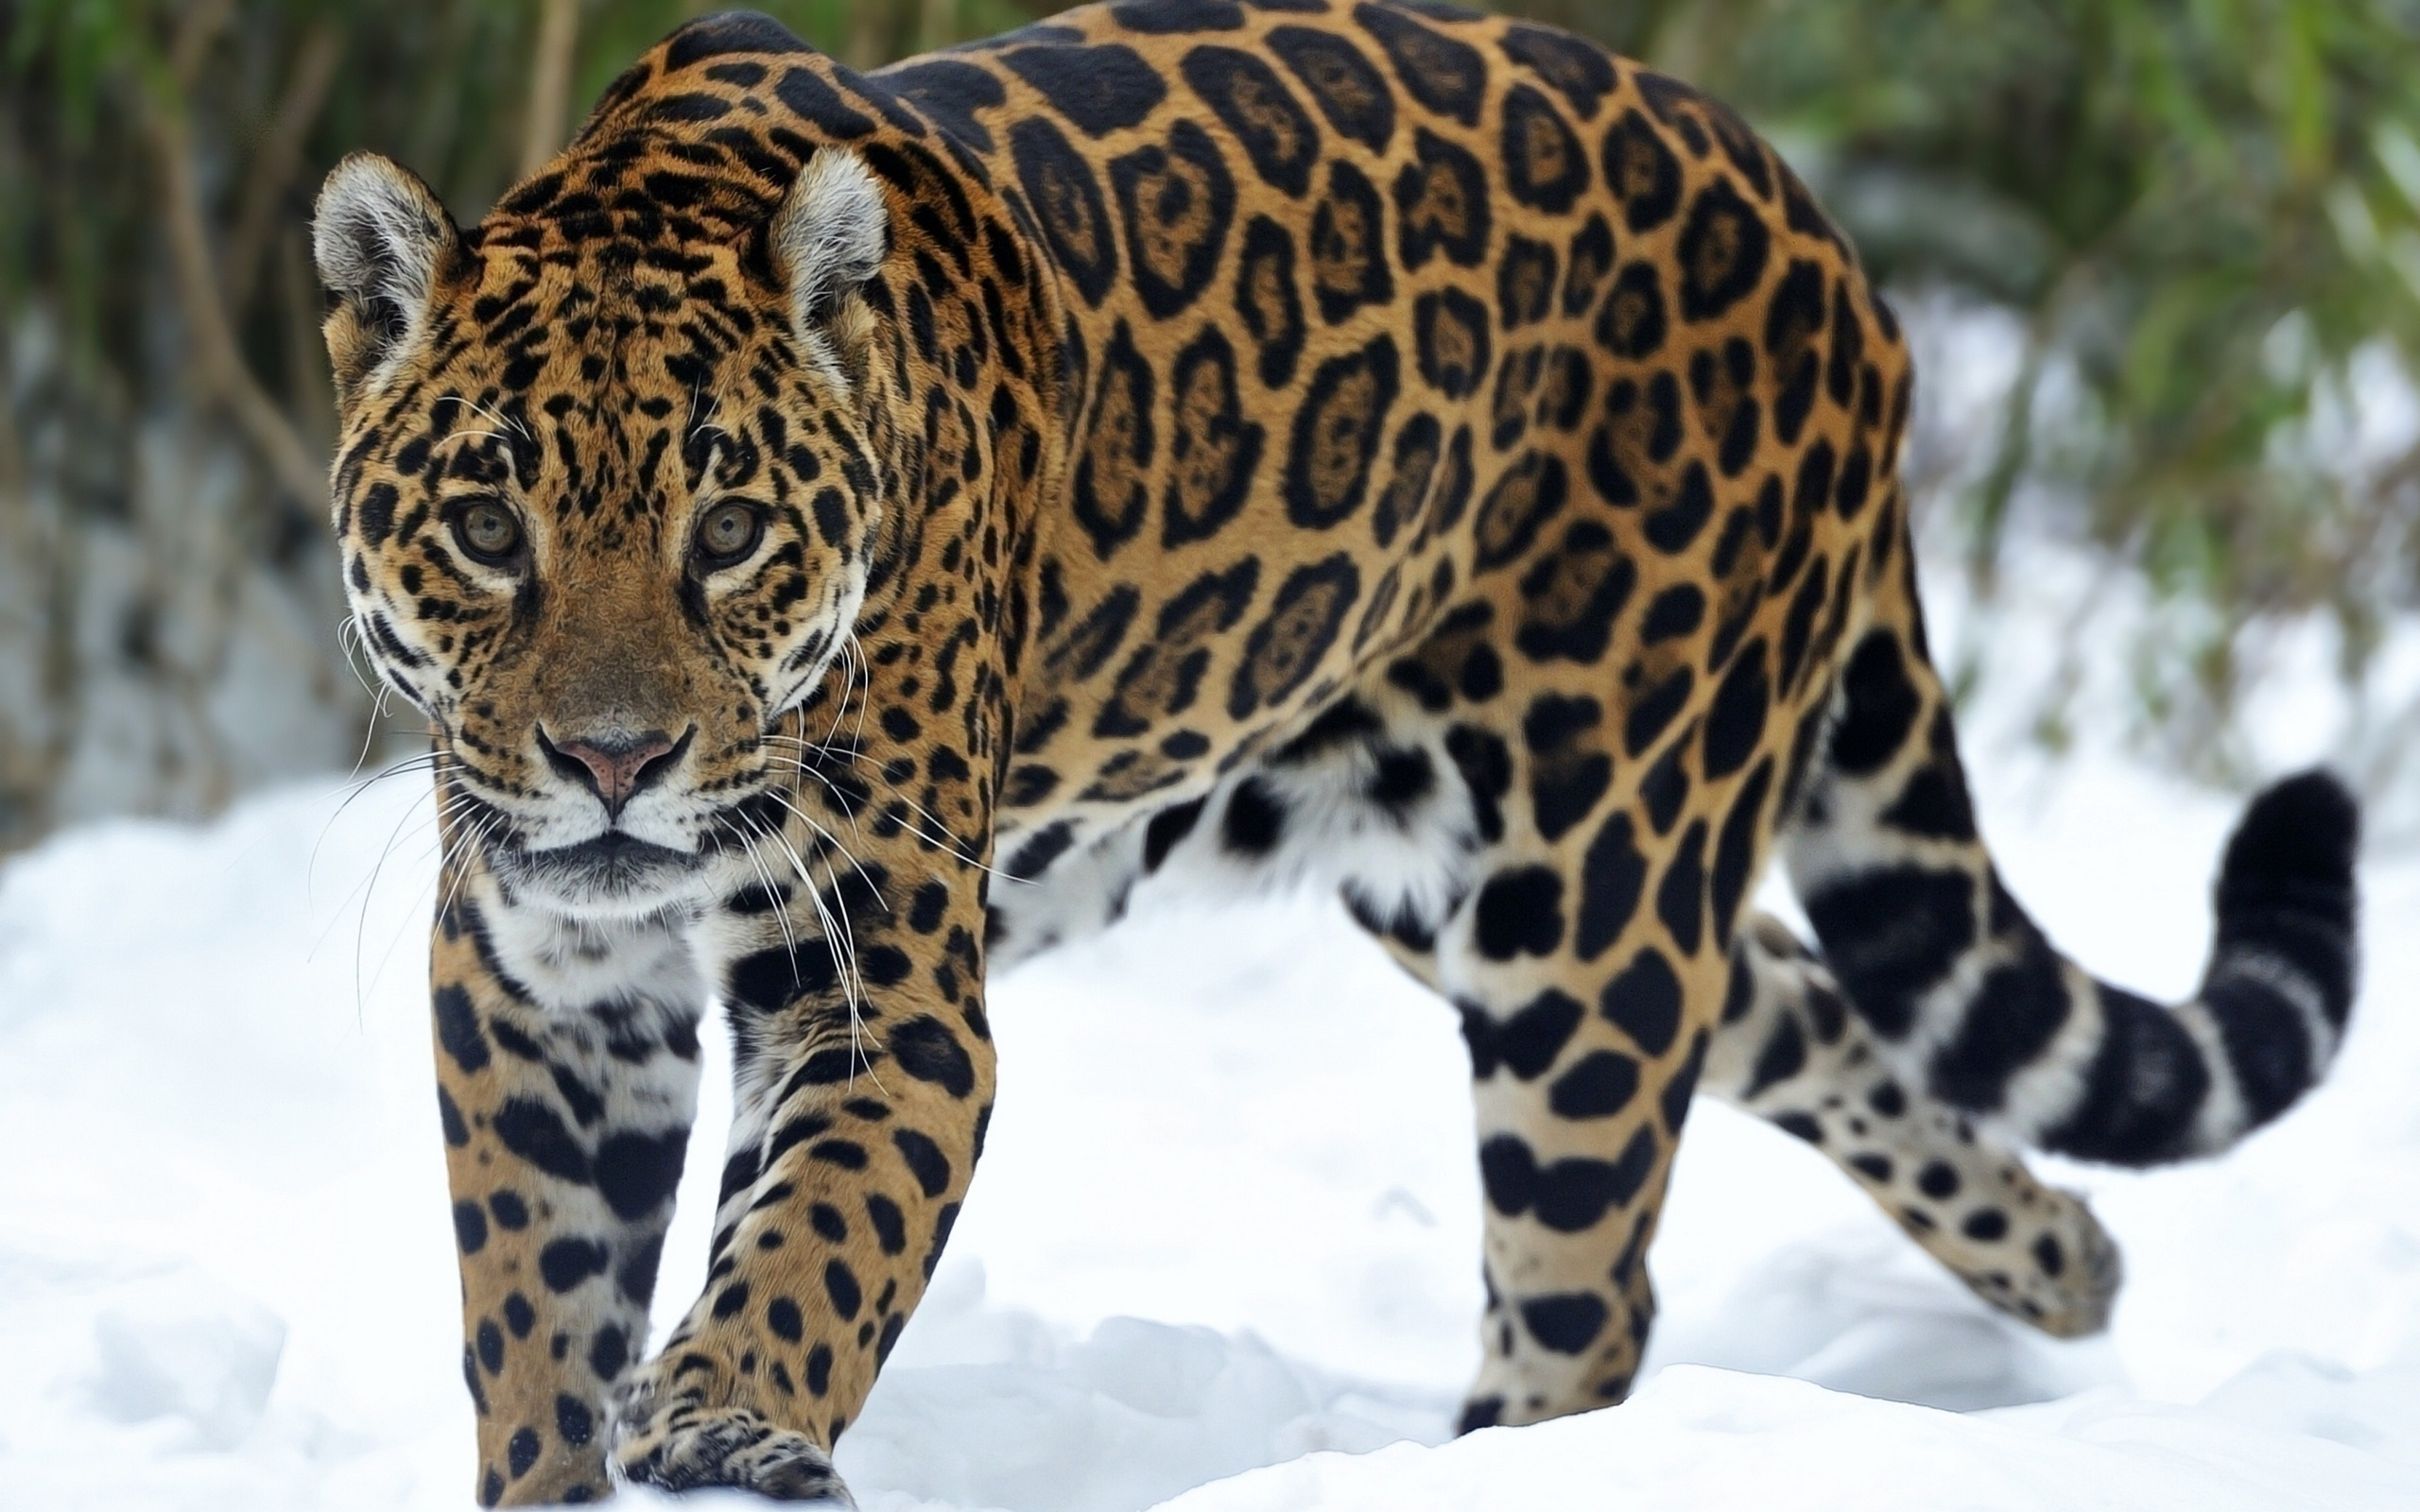 Jaguar animal wallpapers high quality download free - Jaguar animal hd wallpapers ...